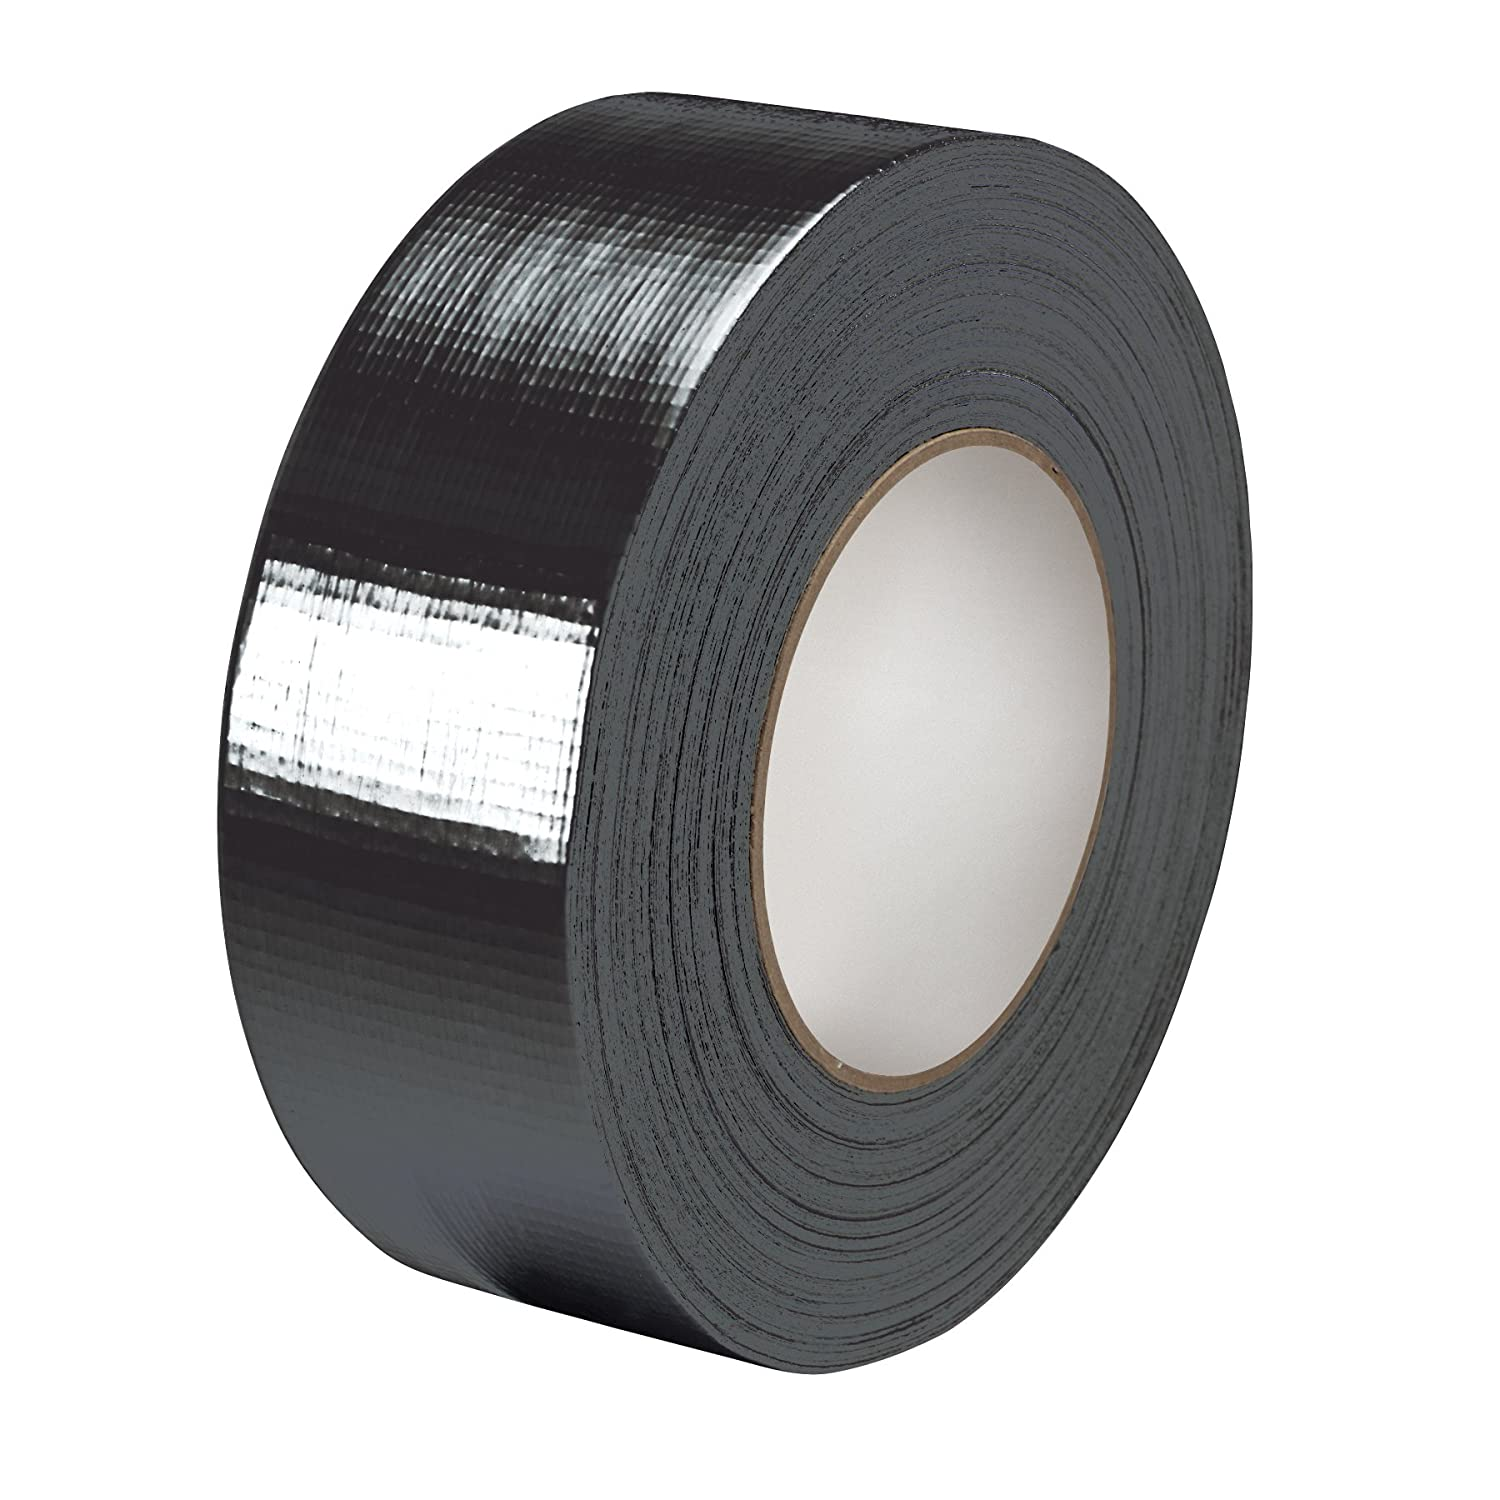 3M Duct Tape, Black, 48-Millimeter by 54.8-Meter